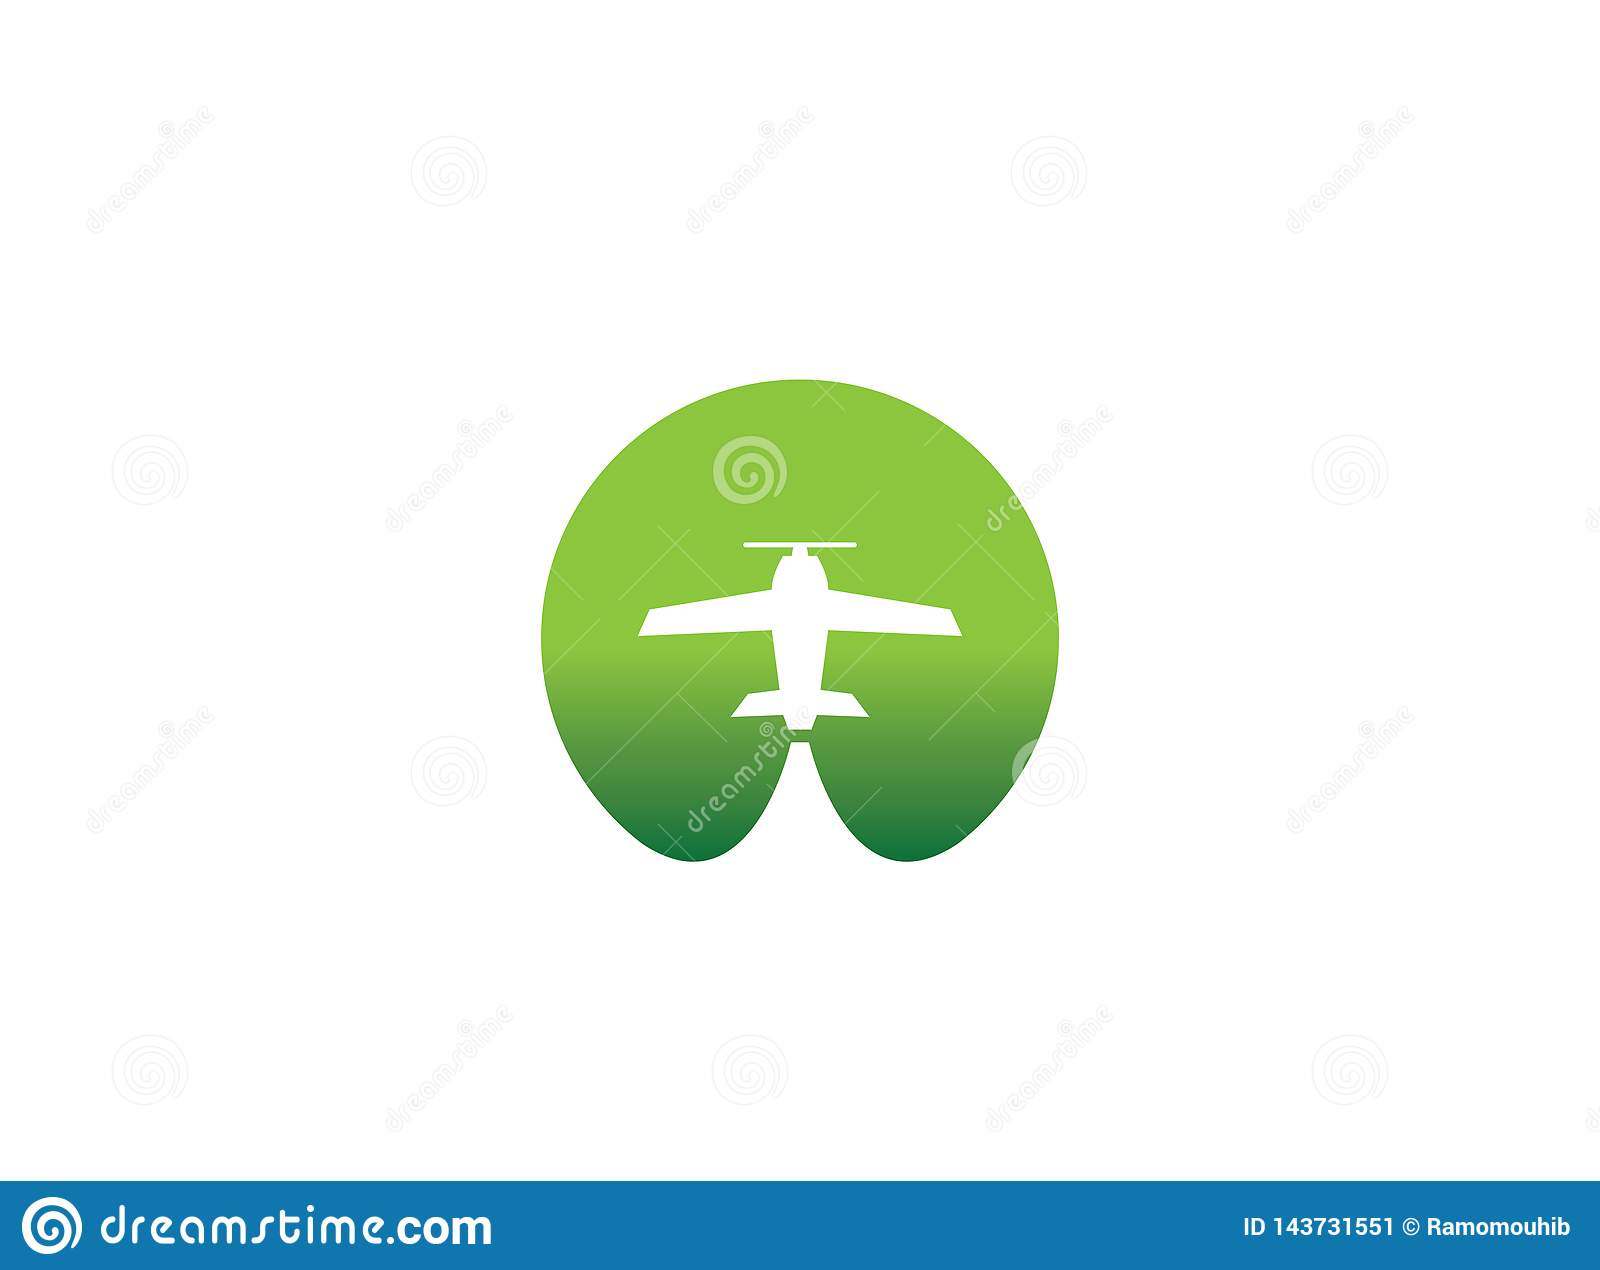 Small plane travel agency logo design idea with an airplane across the green circle negative space. Amazing destinations creative